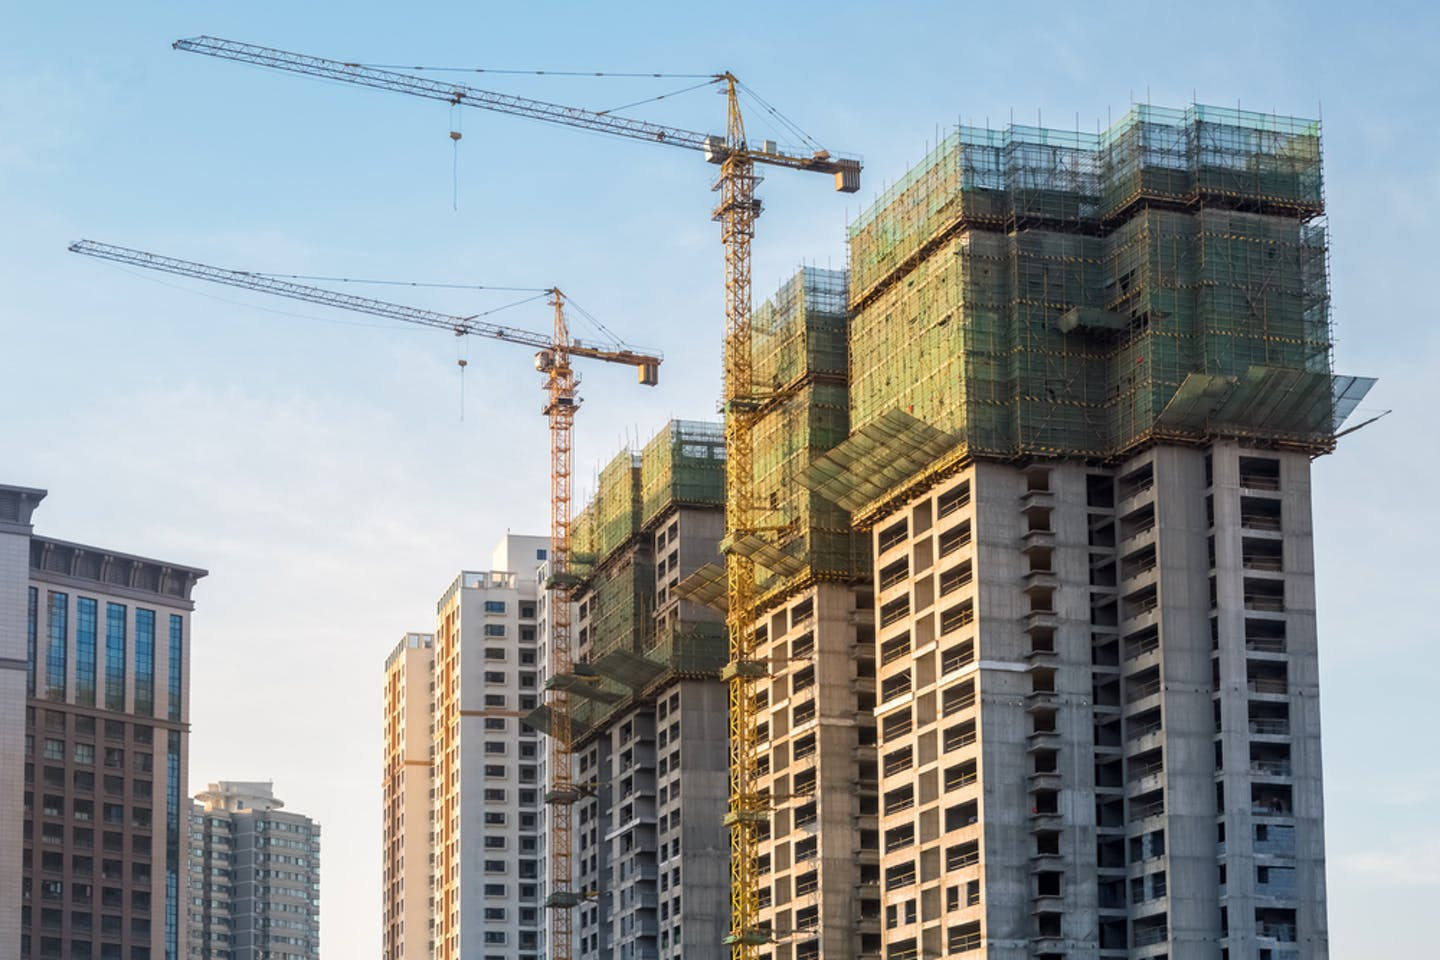 New buildings under construction in China